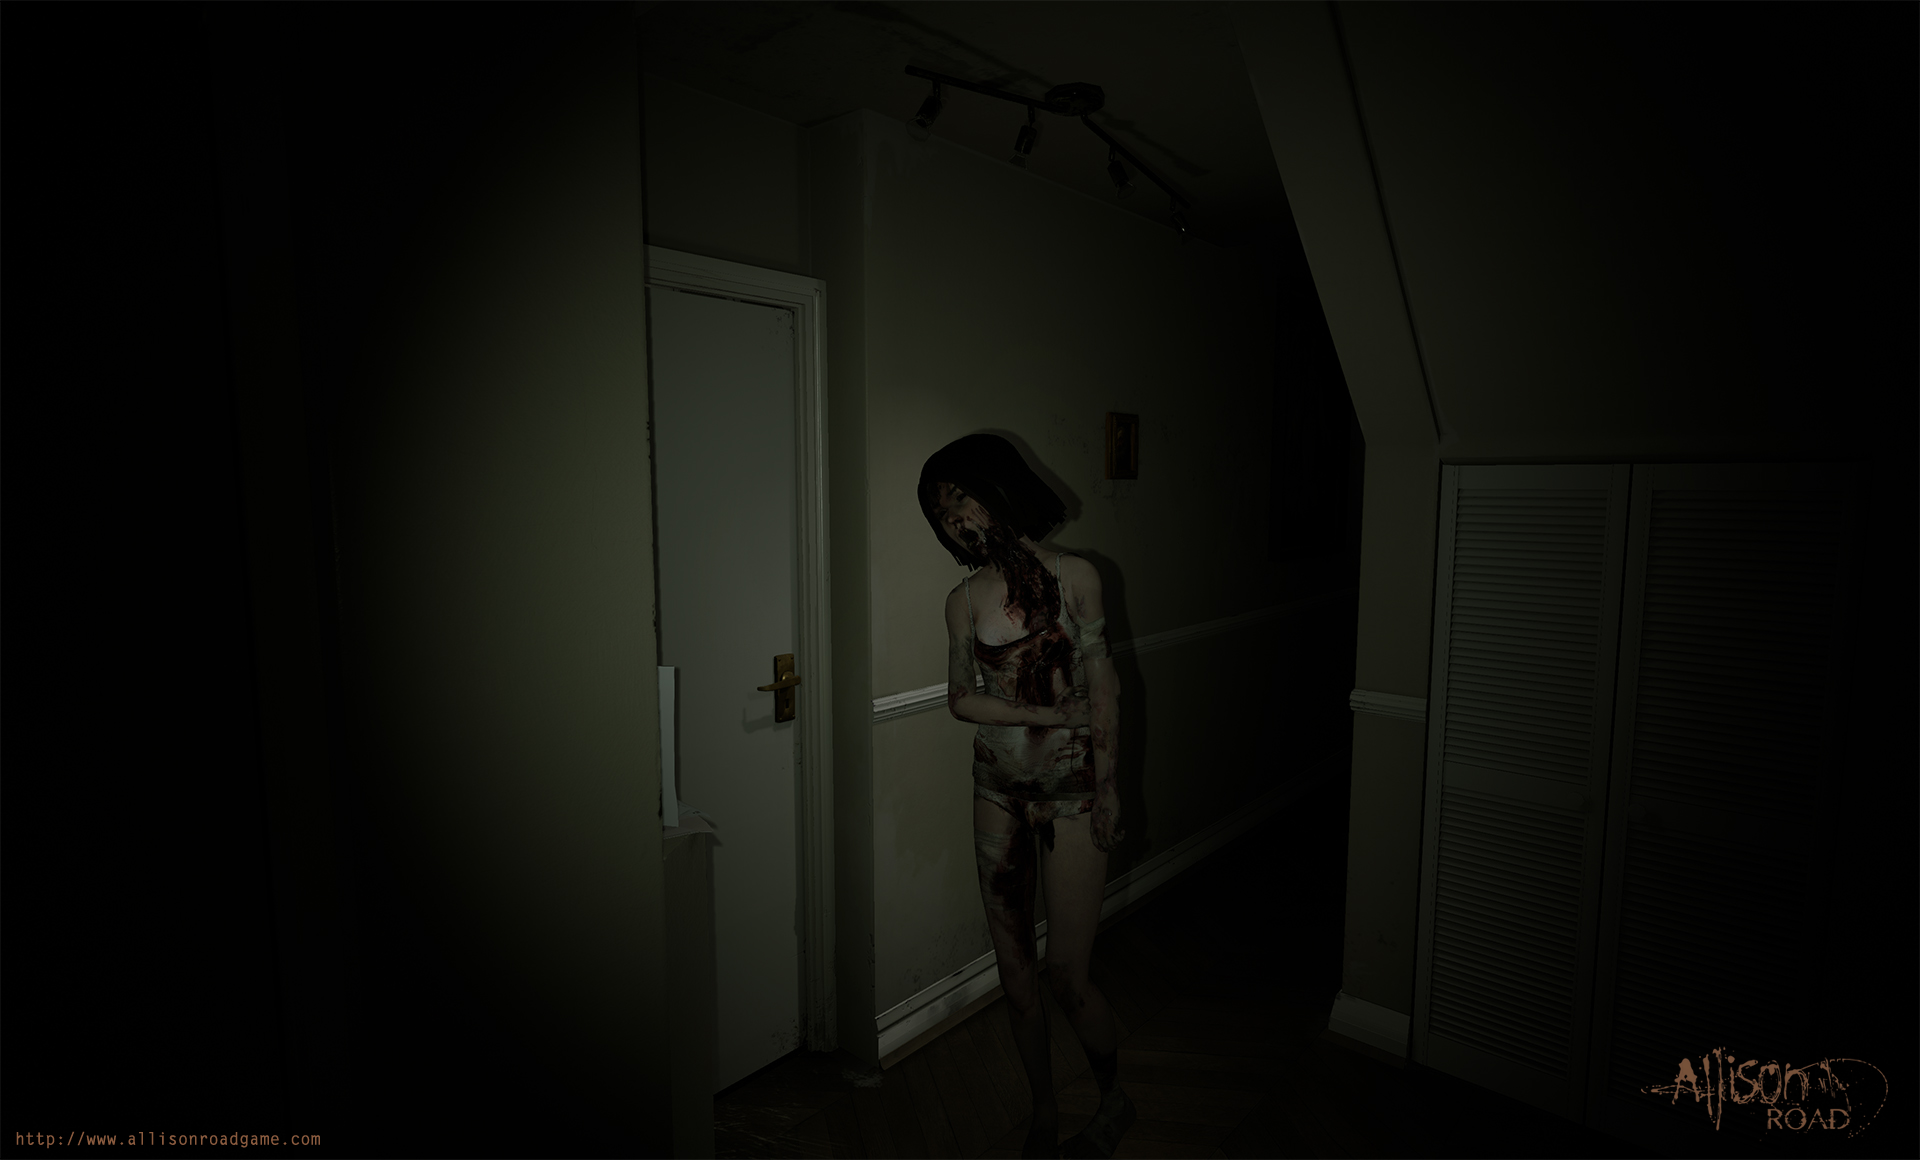 Allison Road Might Be The Horror Game Weve All Been Waiting For UNILAD hallway lily12